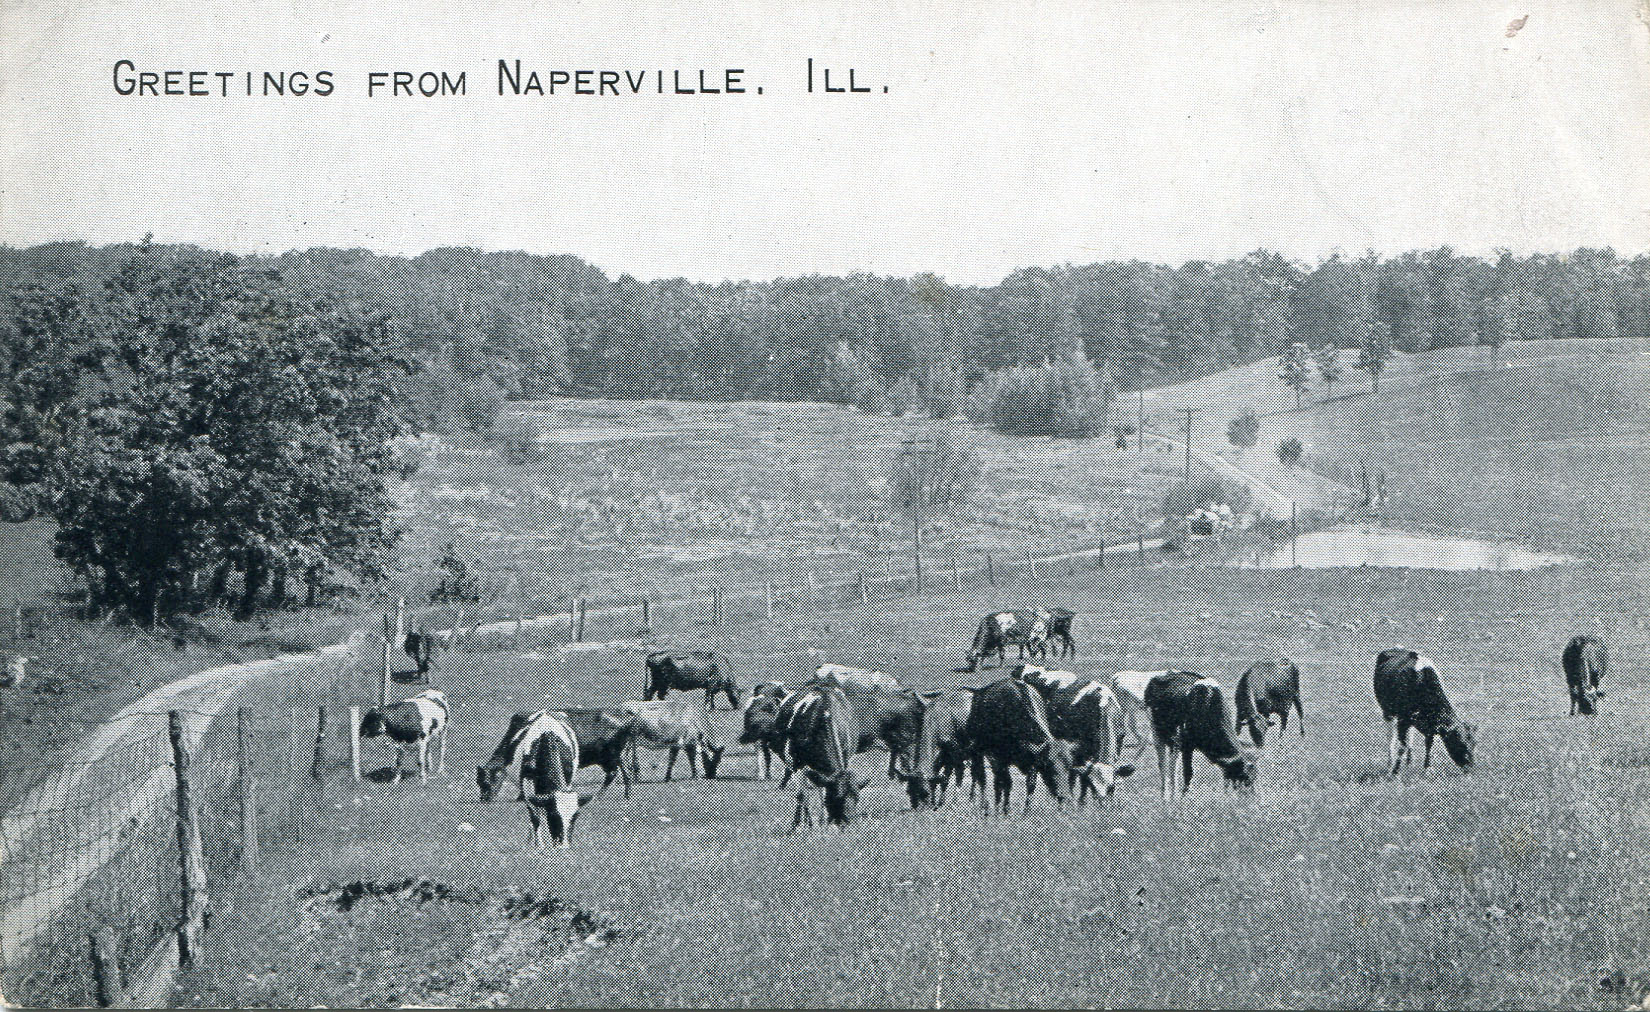 Postcard of cows in field